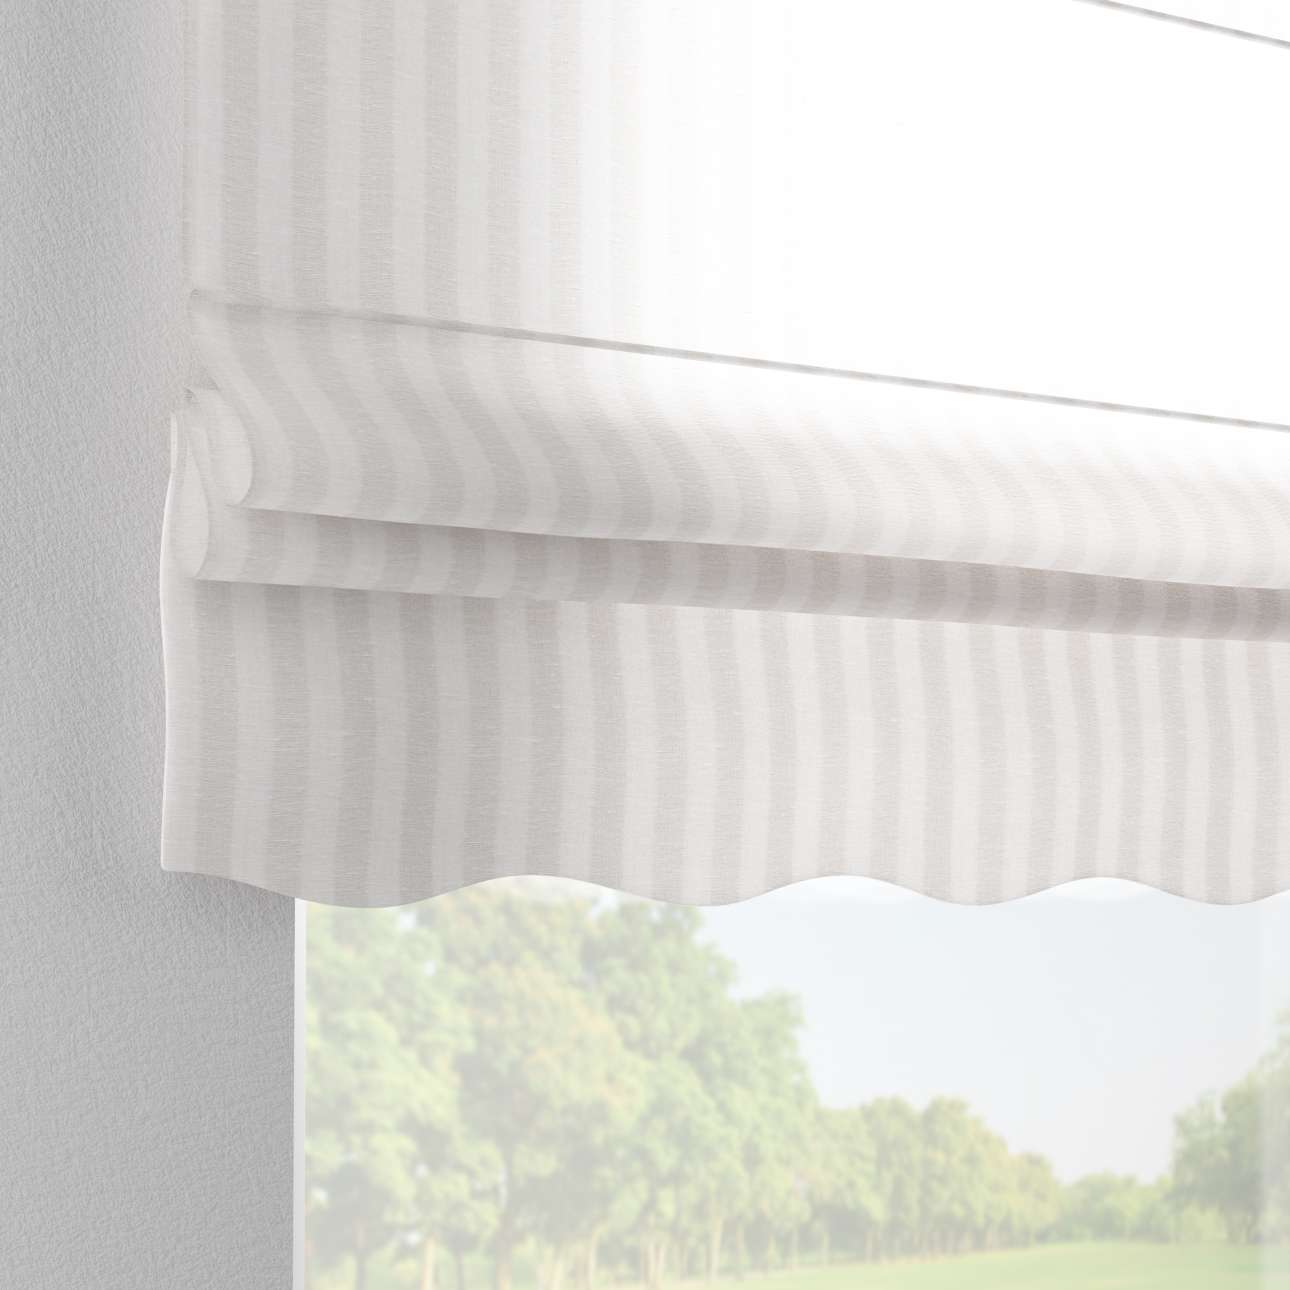 Florence roman blind  80 x 170 cm (31.5 x 67 inch) in collection Linen , fabric: 392-03